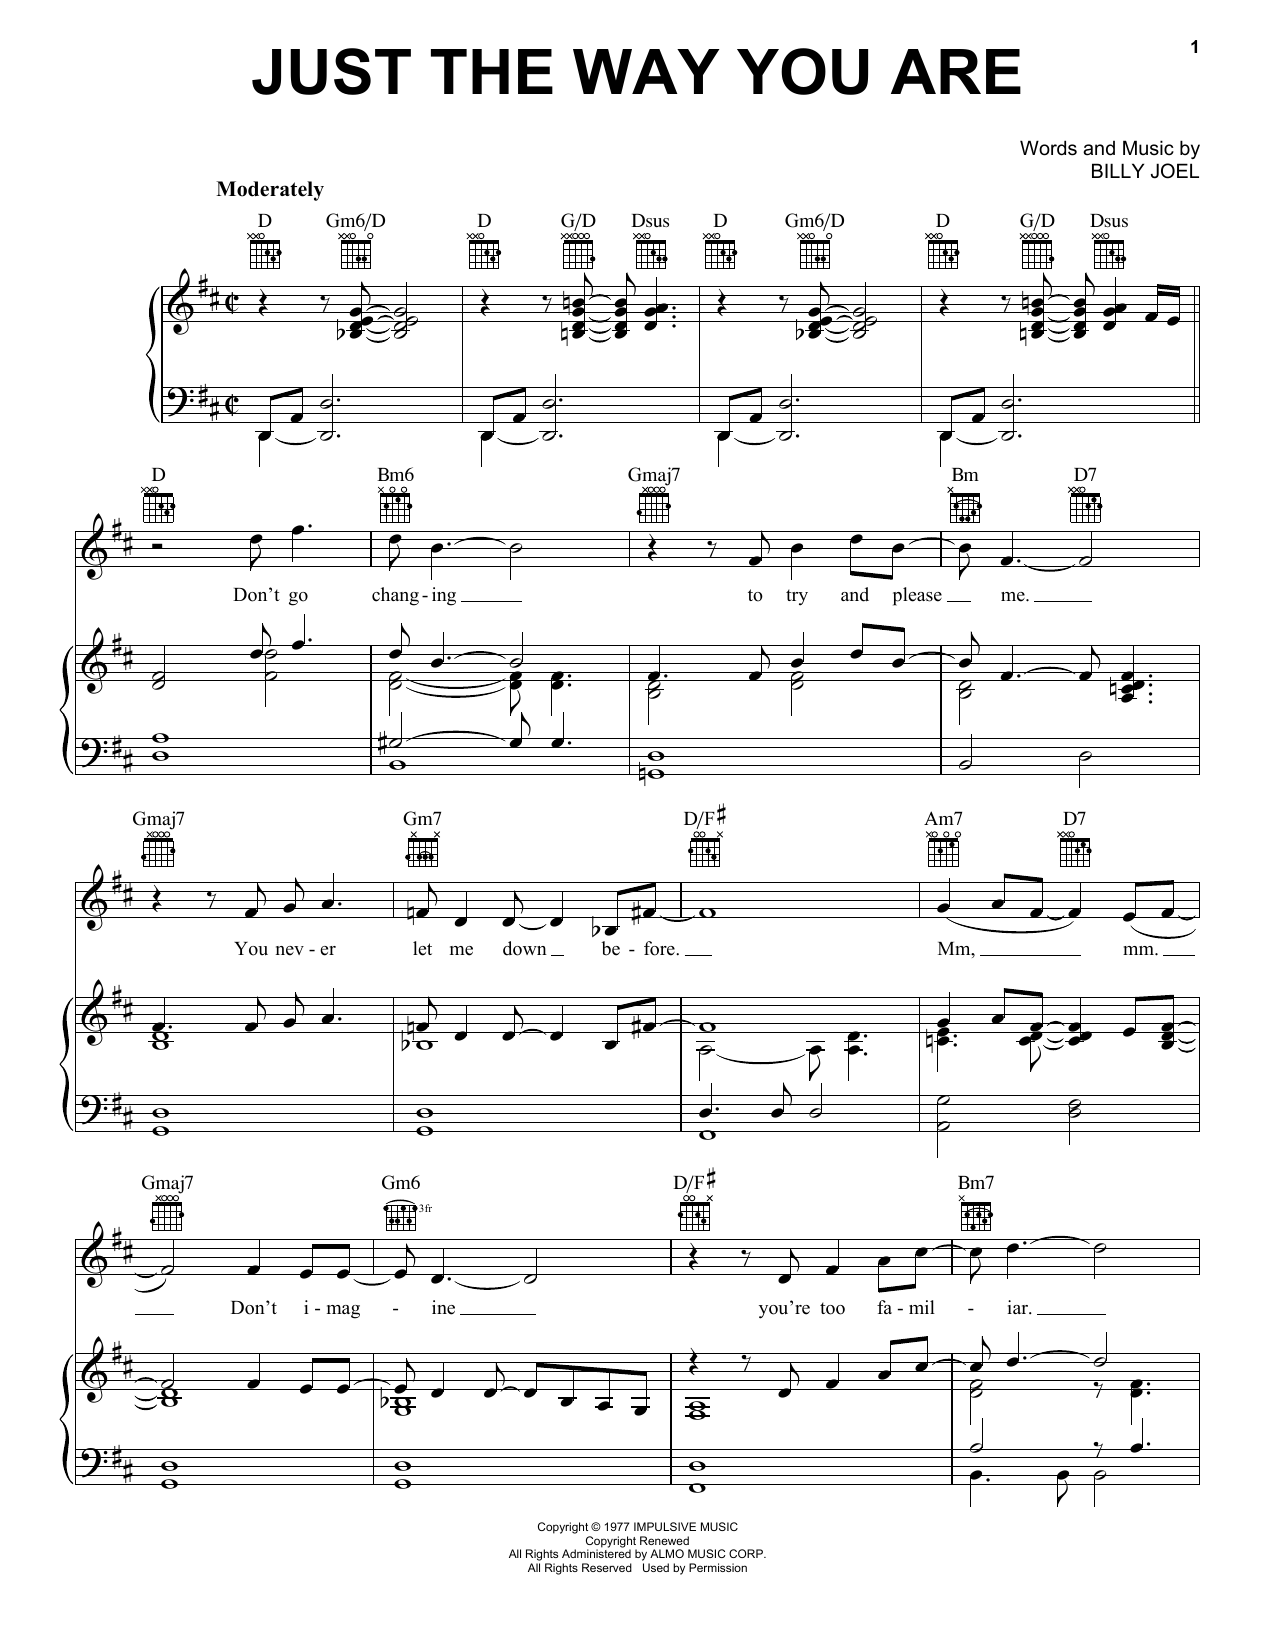 Billy Joel Just The Way You Are sheet music notes and chords. Download Printable PDF.